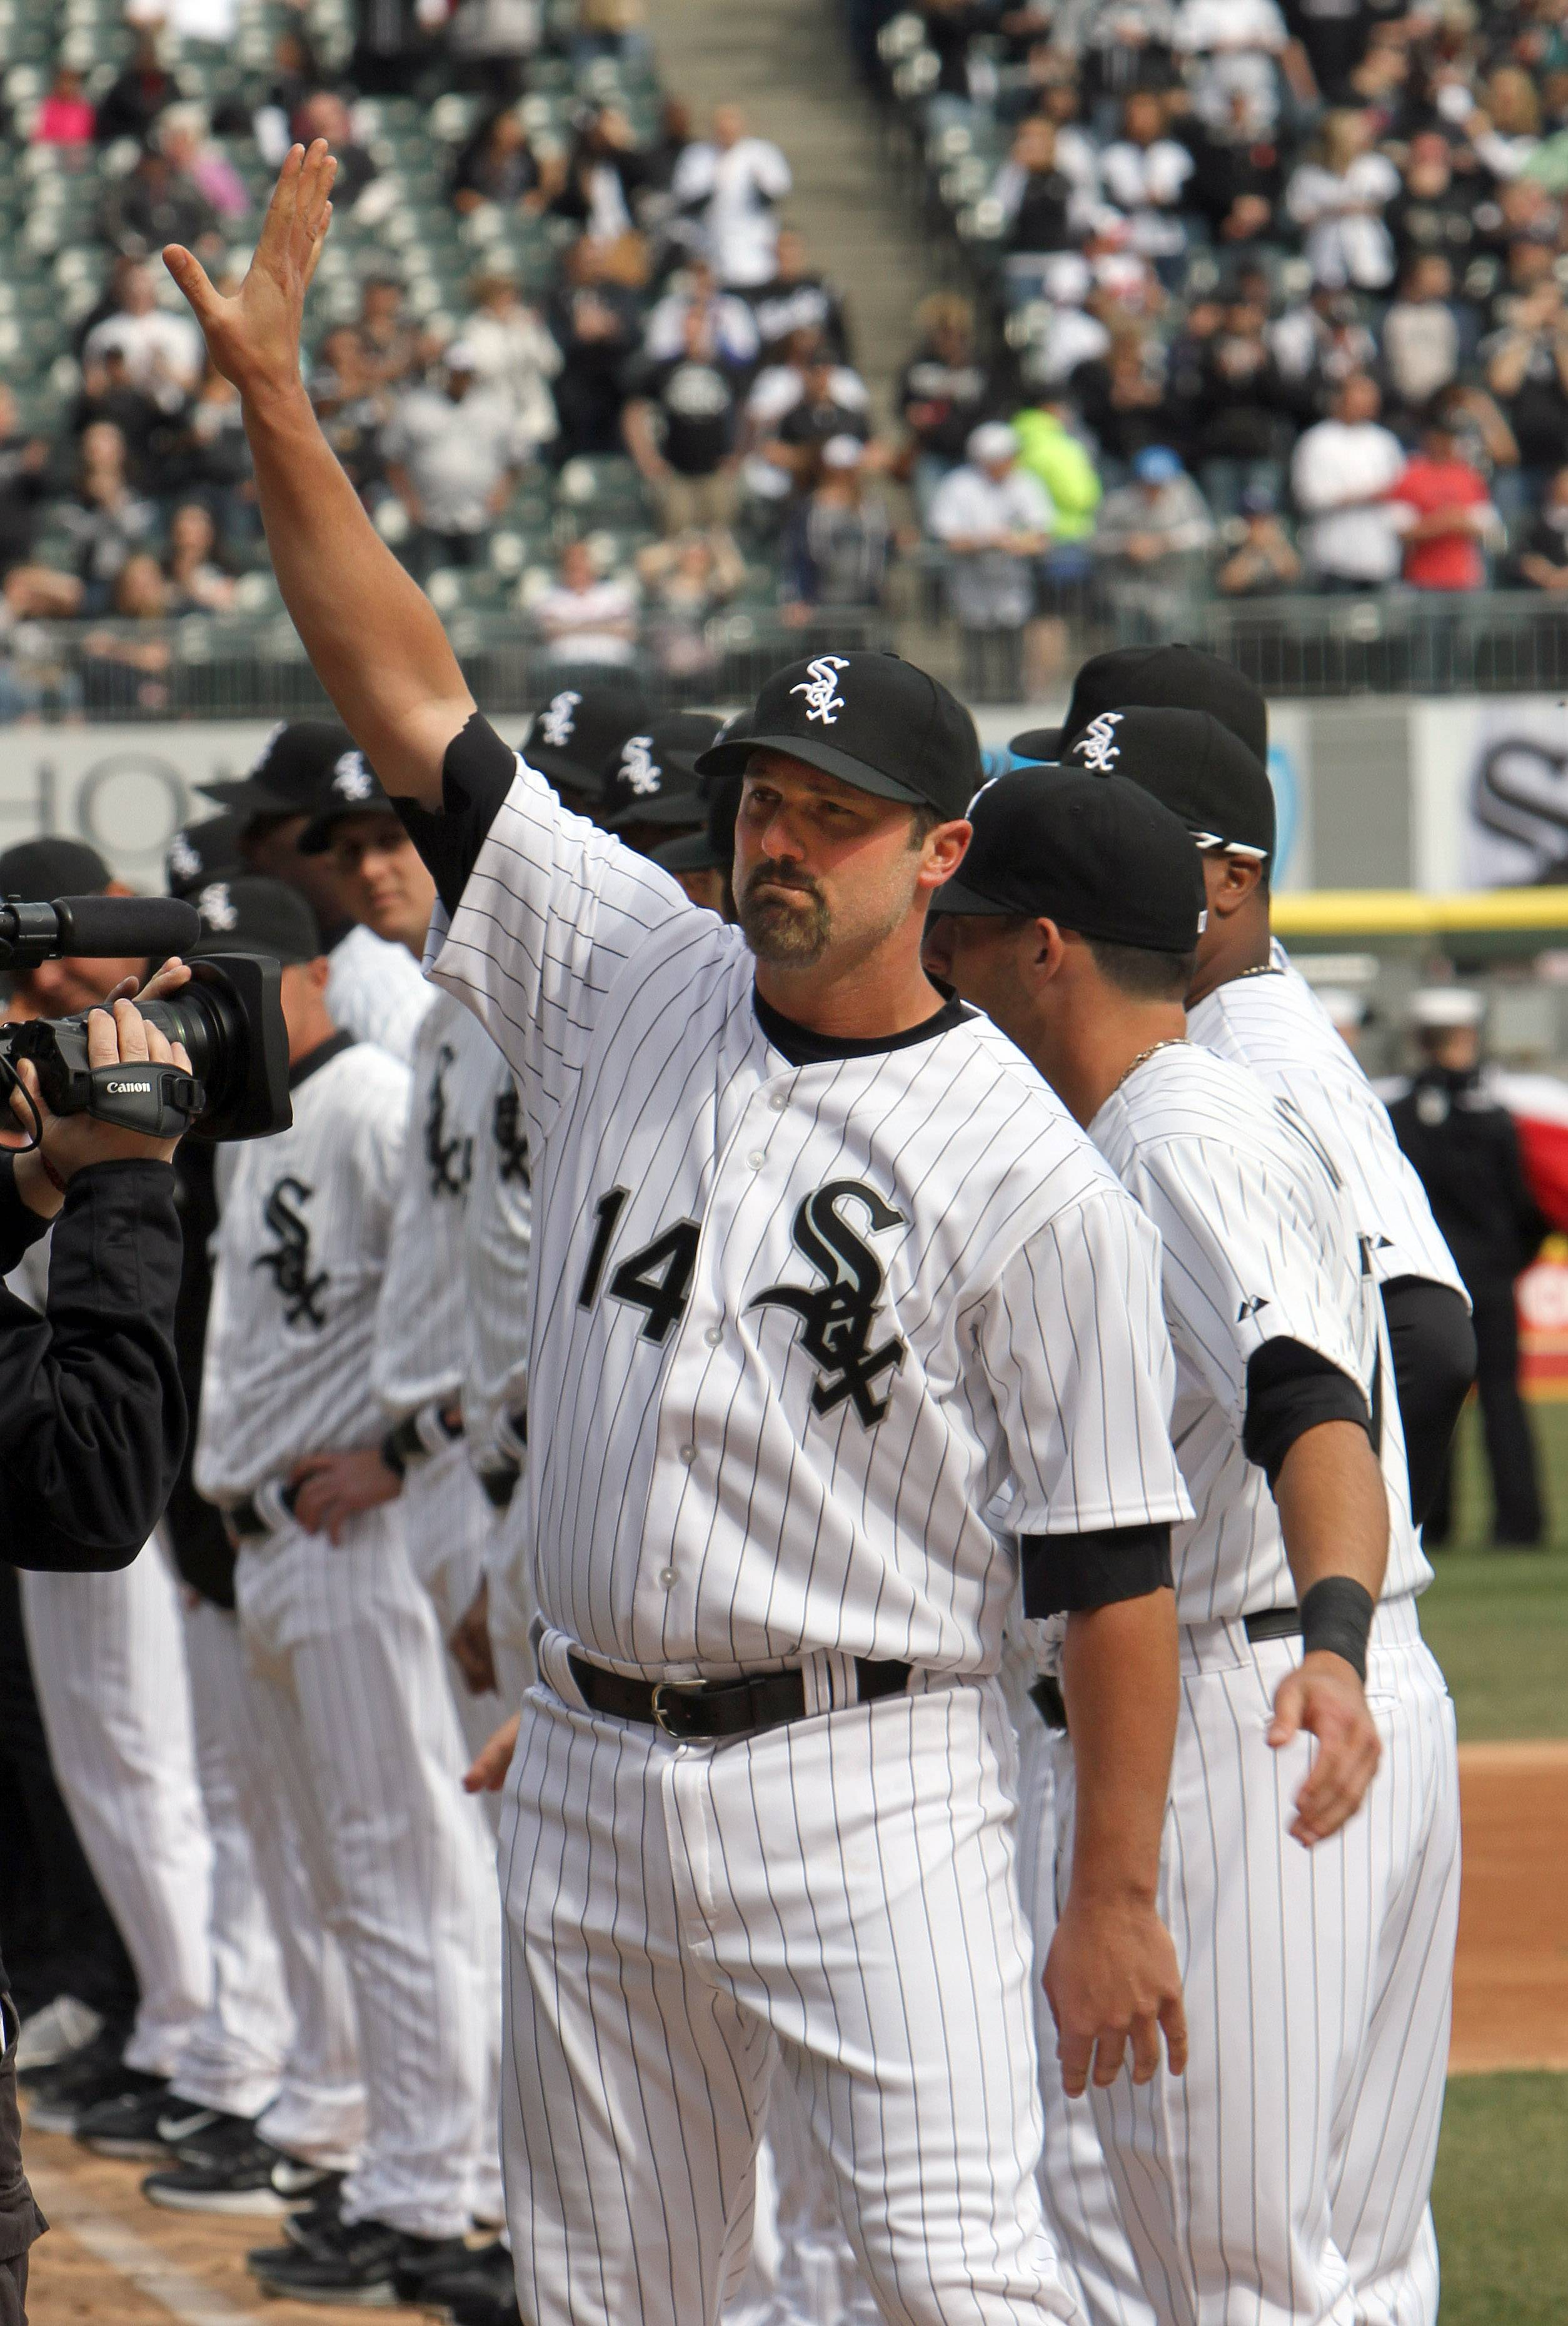 Chicago White Sox first baseman Paul Konerko waves to the crowd during player introductions.